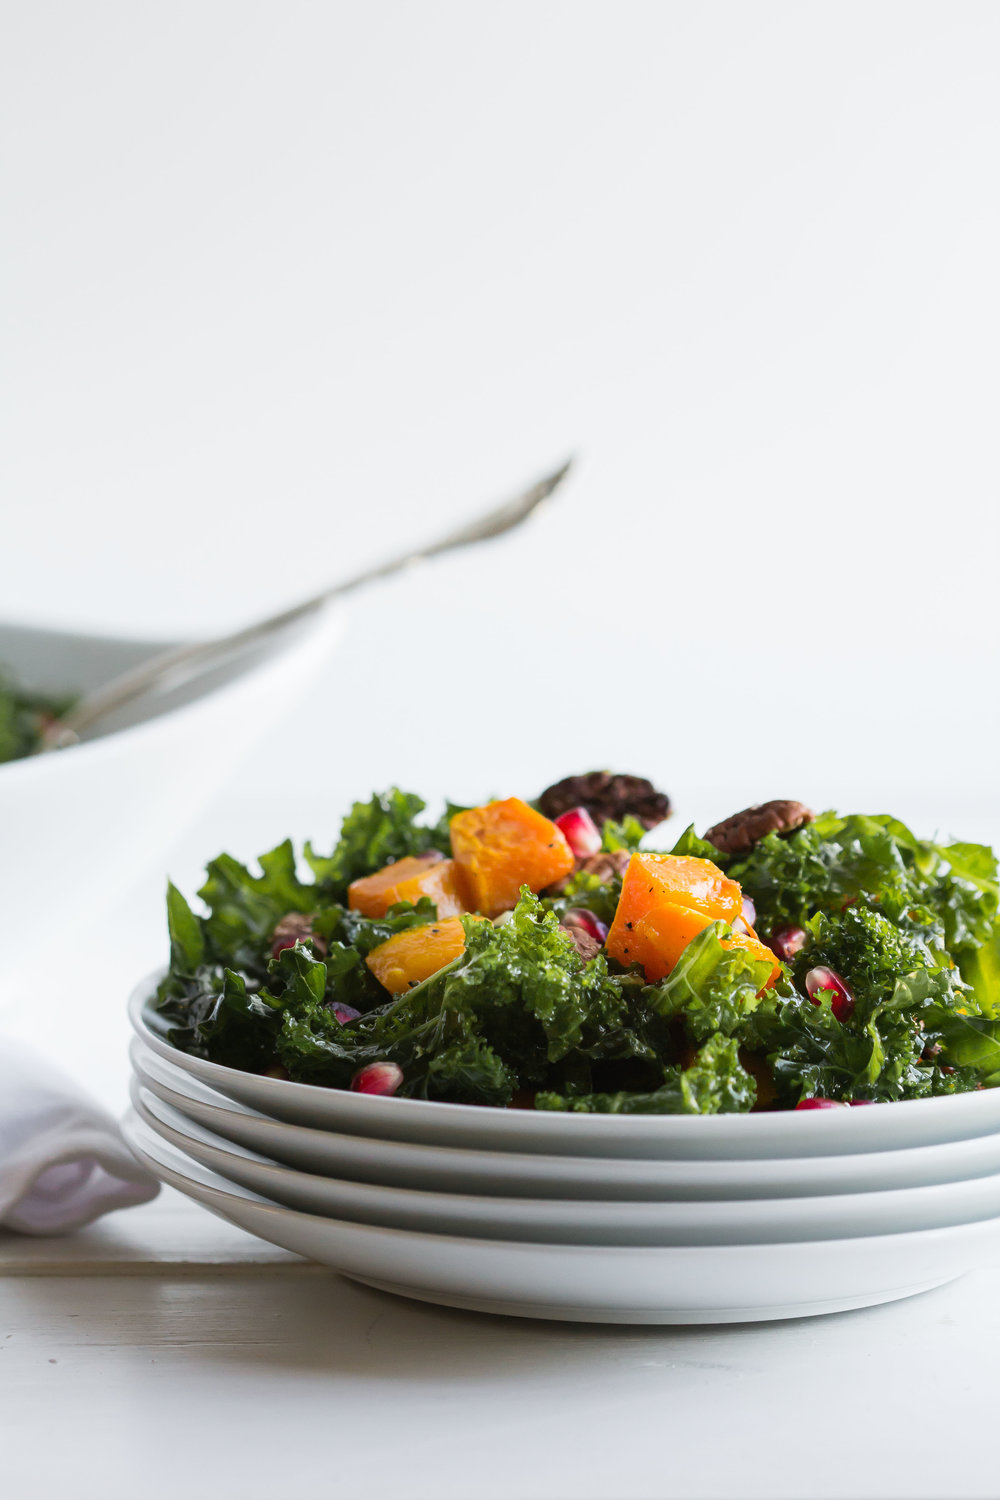 Roasted Squash + Kale Salad with Maple-Dijon Vinaigrette-7.jpg